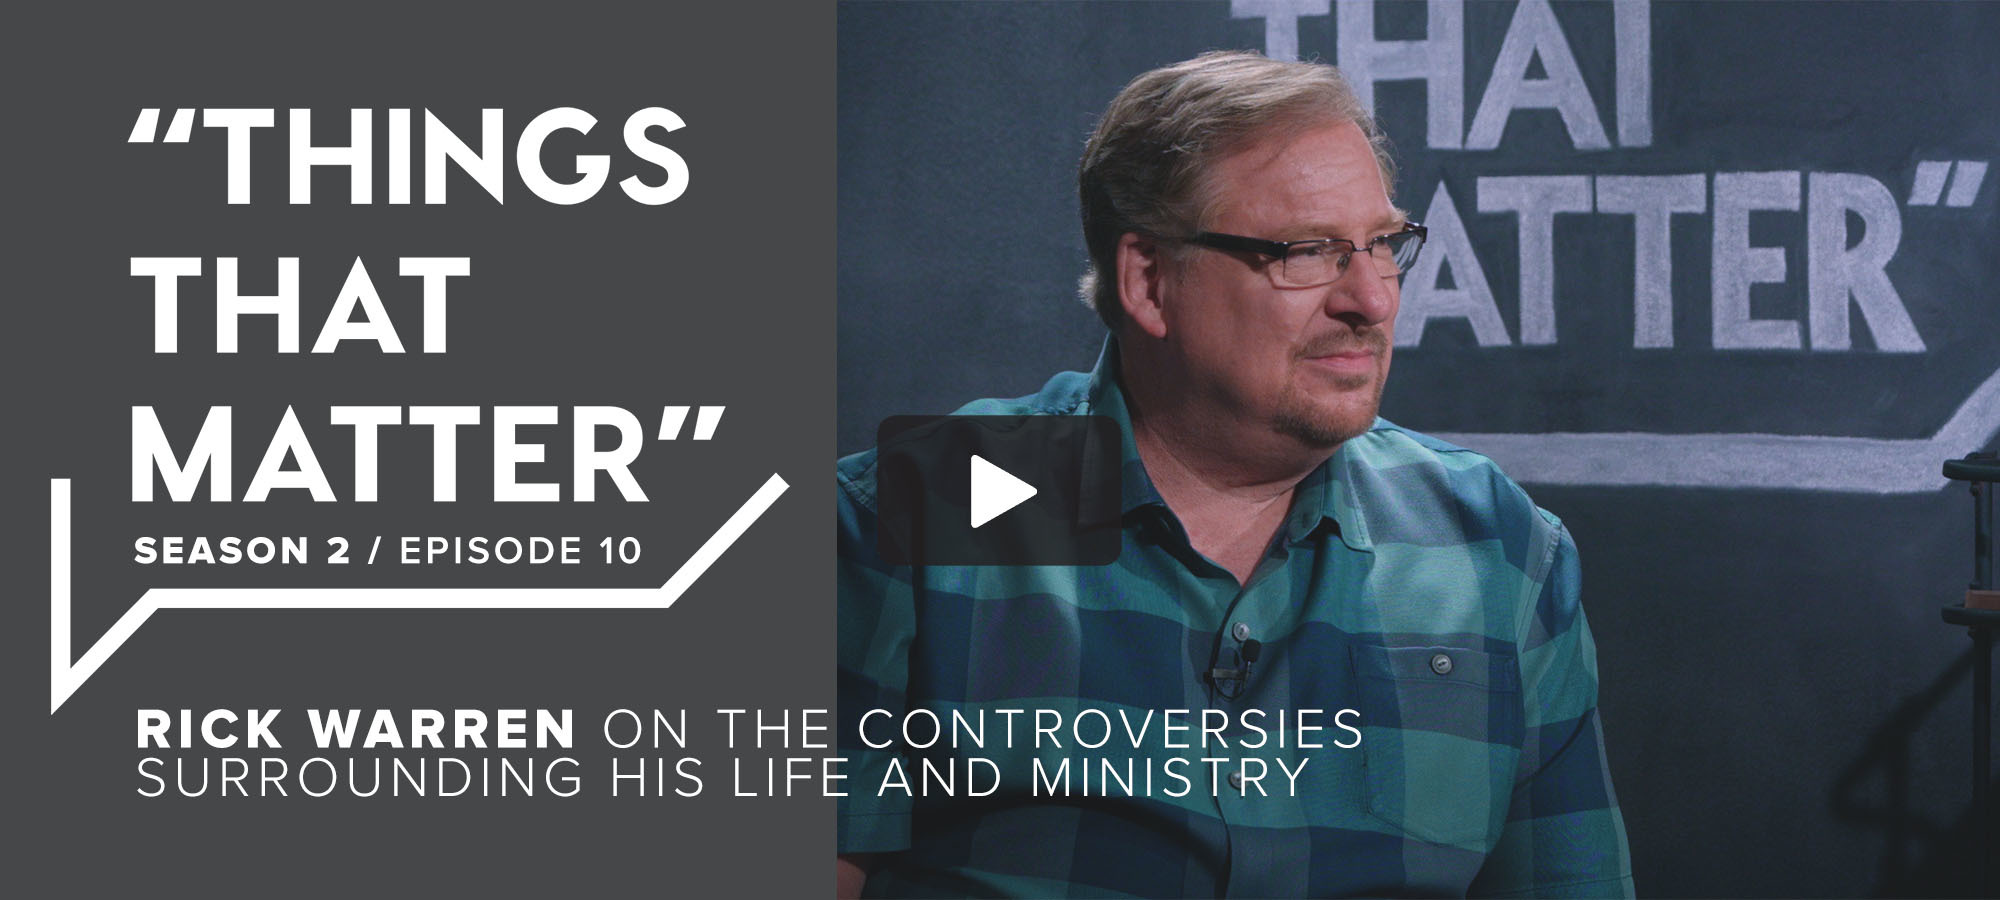 TTM S2 E10 - Rick Warren on the Controversies Surrounding His Life and Ministry